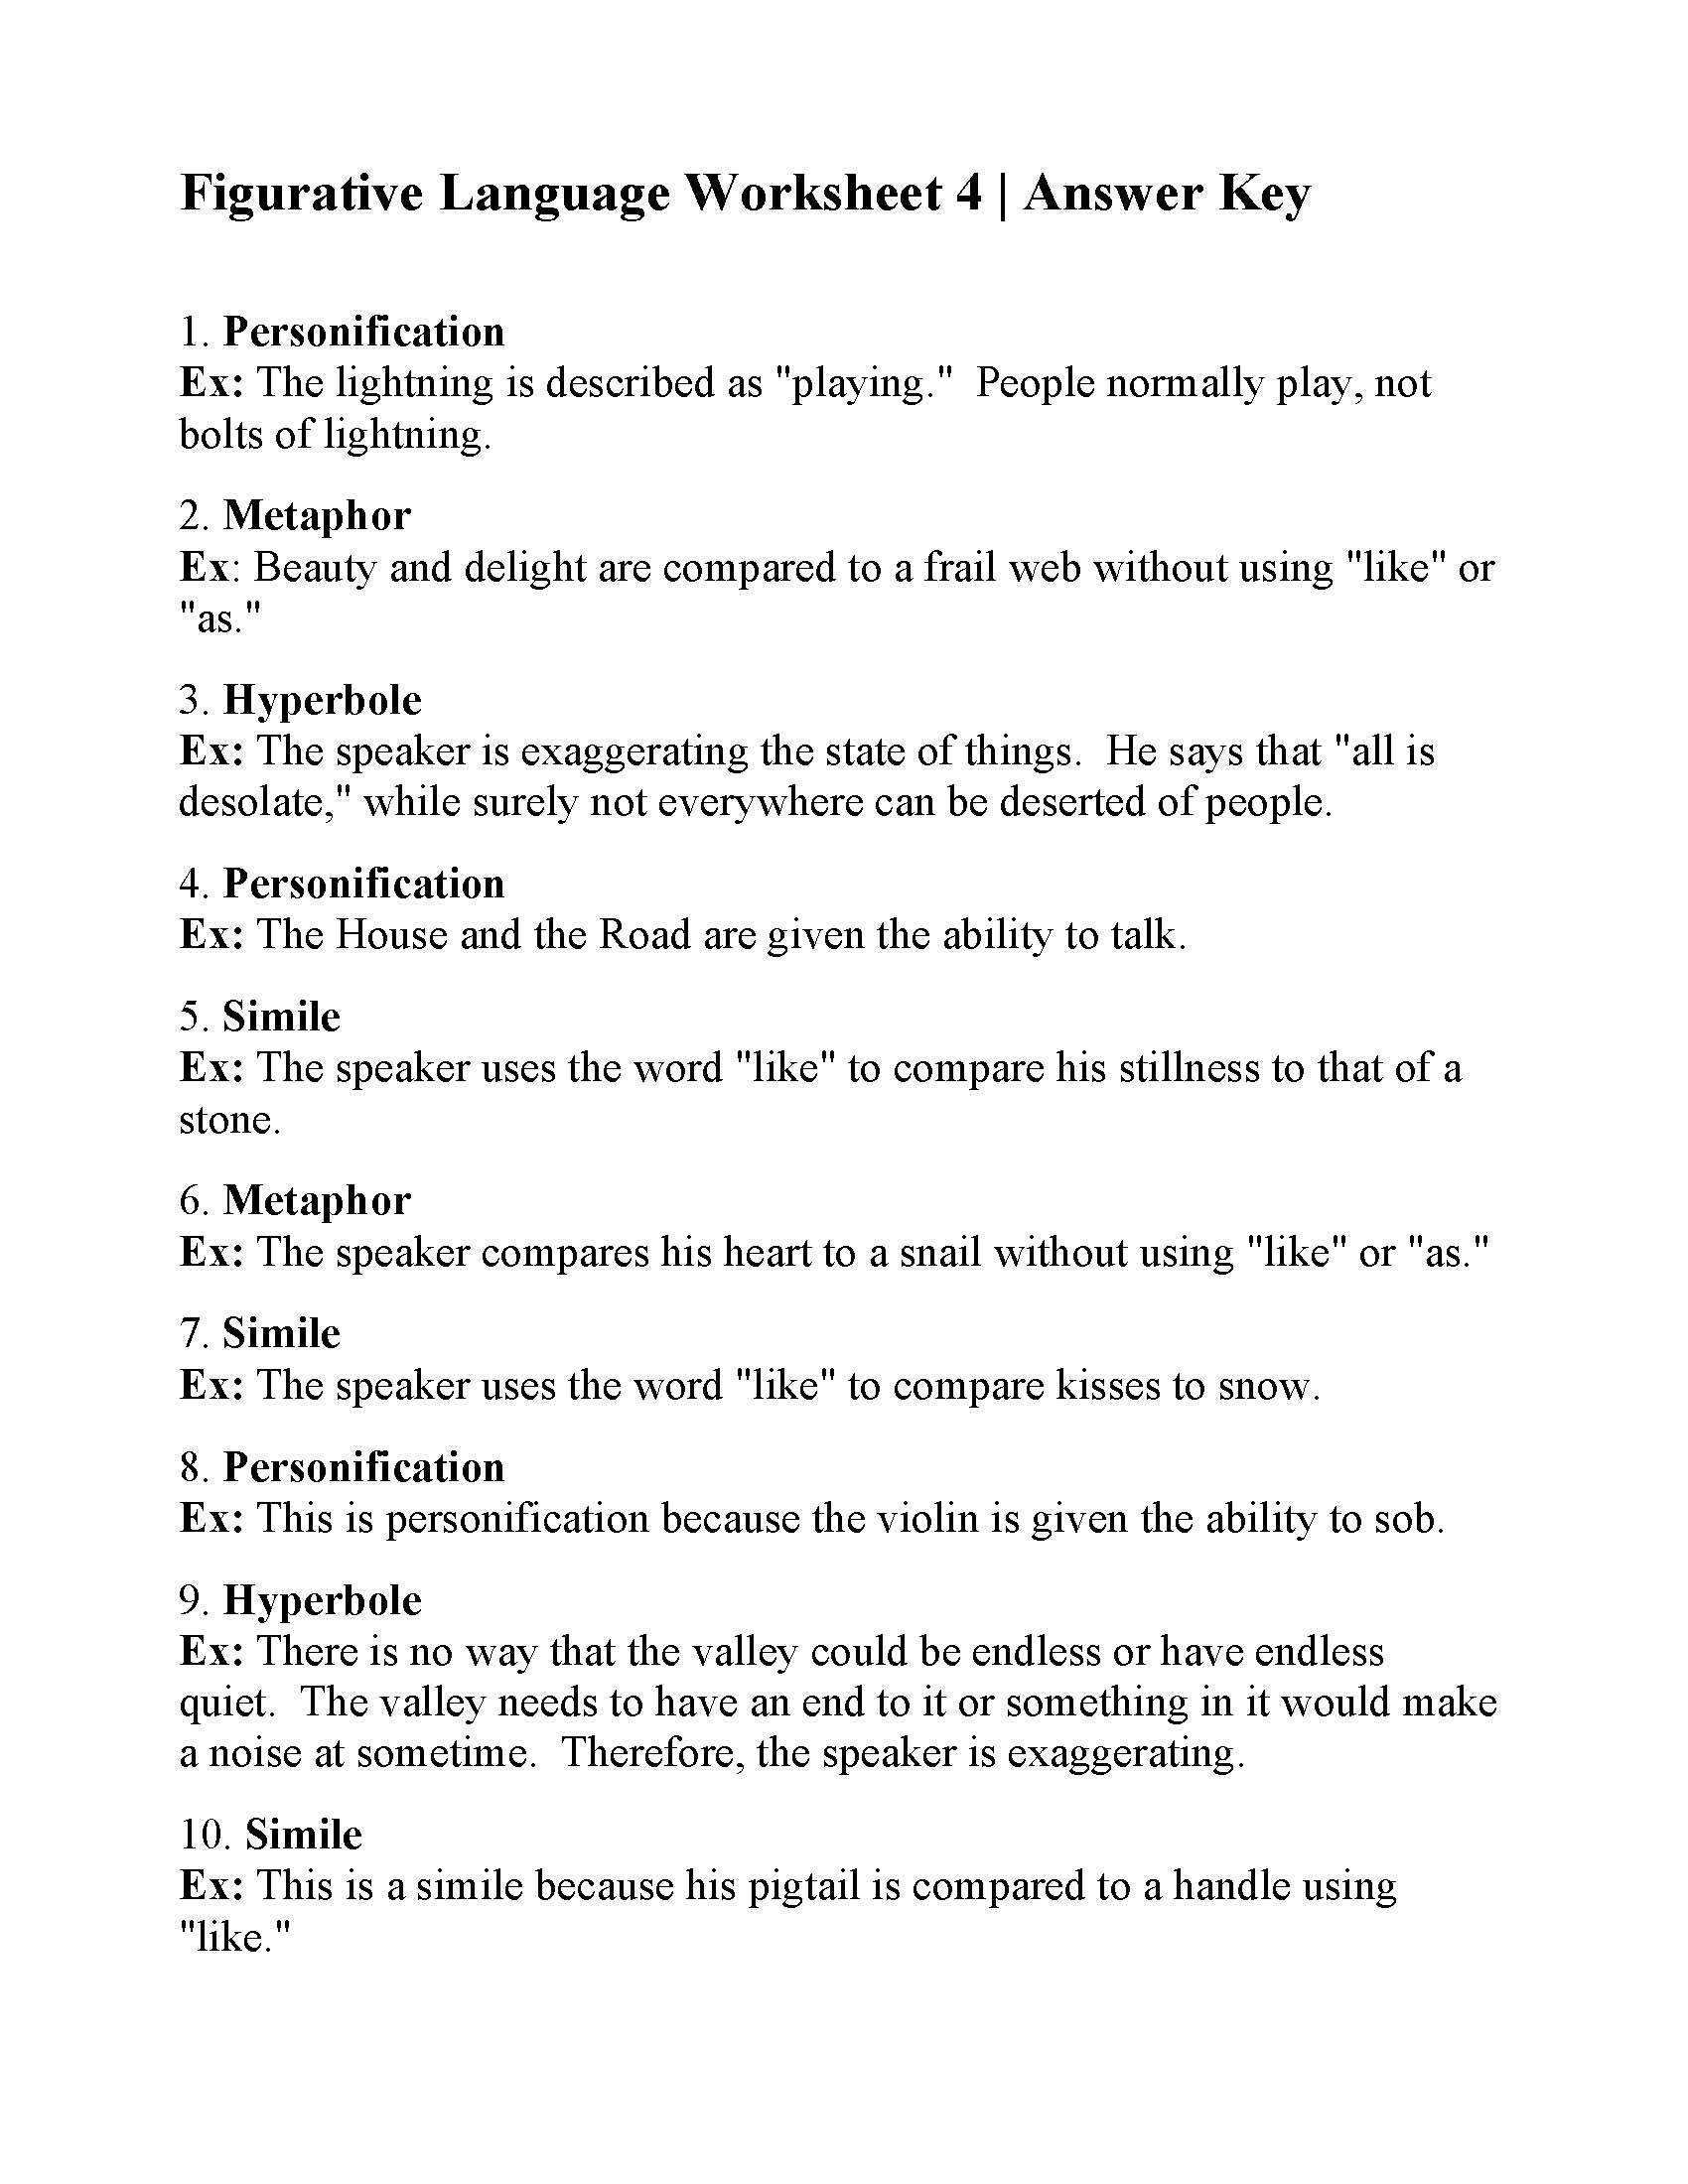 Personification Worksheets 6th Grade Simile Worksheets for 6th Grade